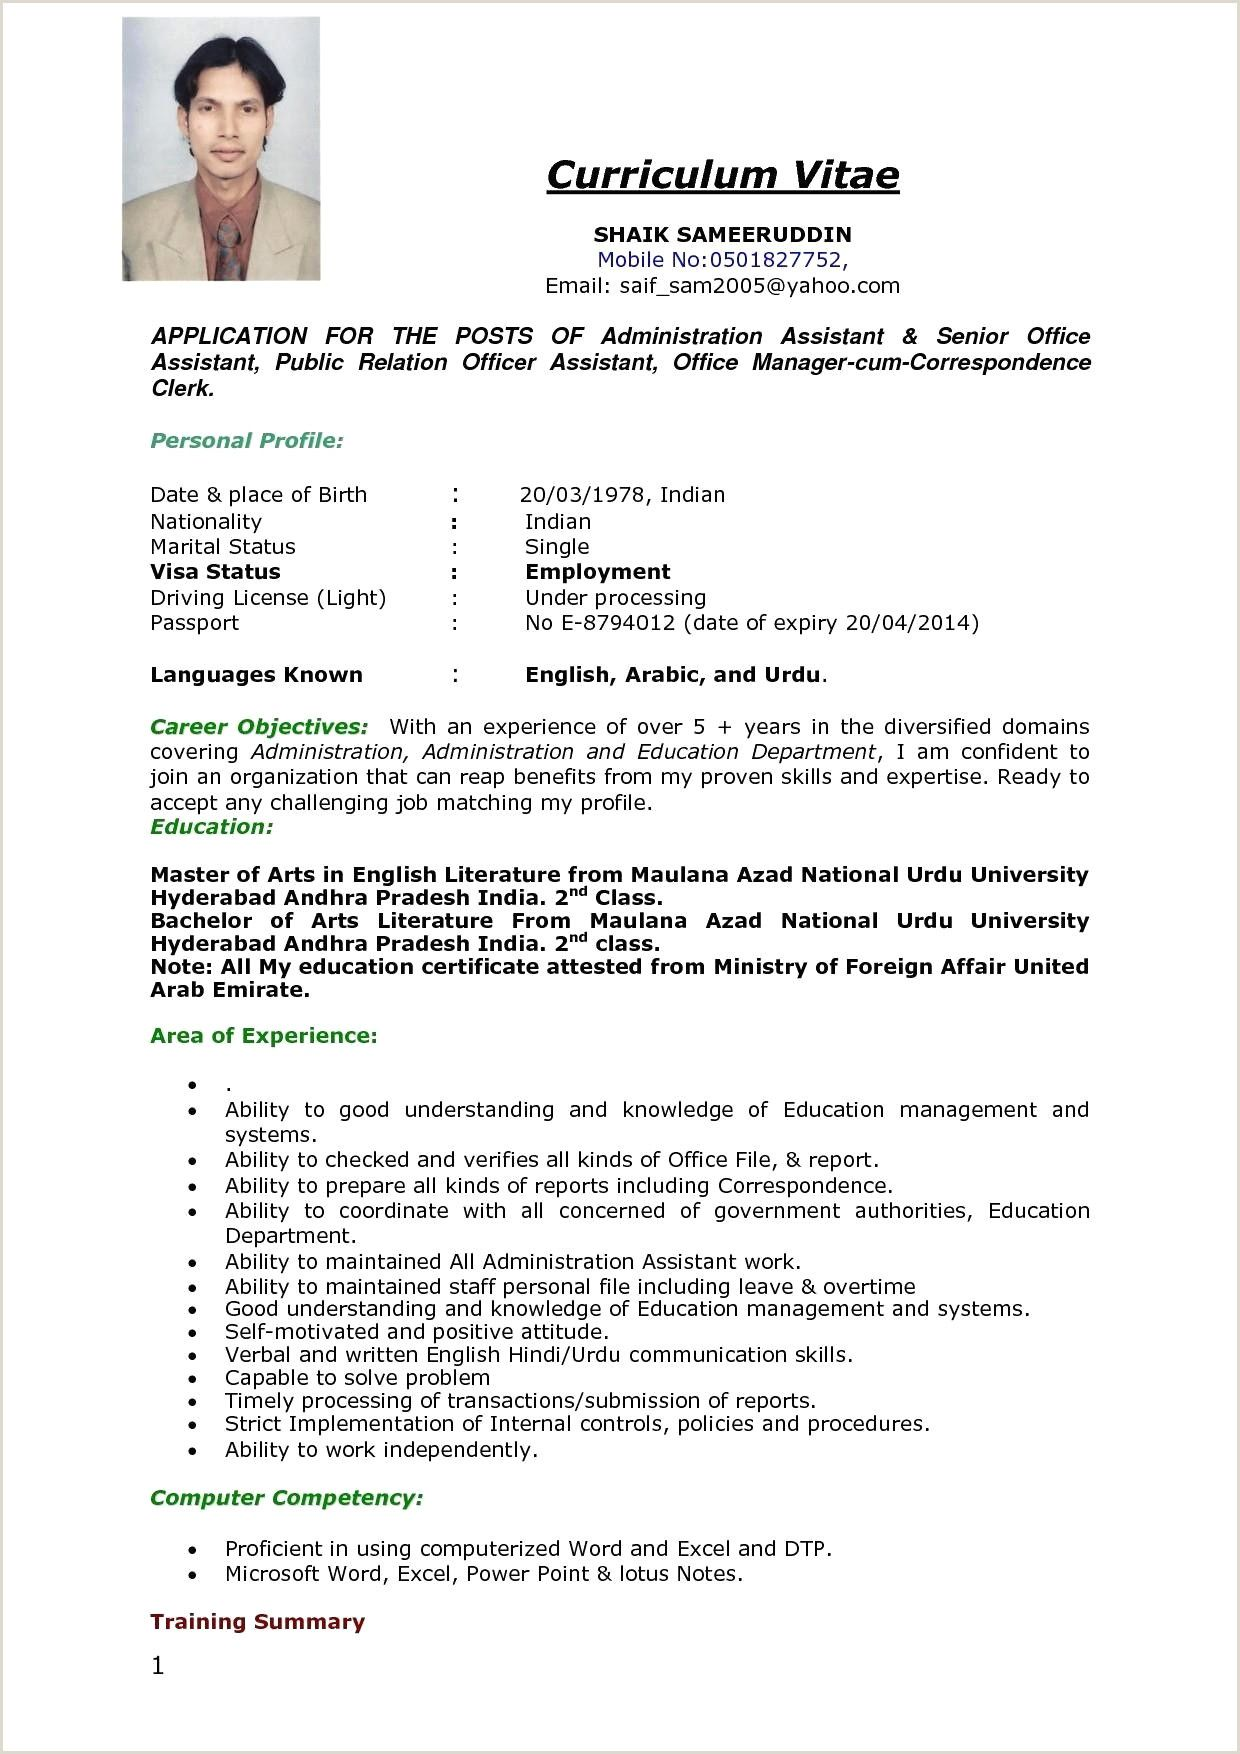 65 Luxury Image Of Resume Samples For General Practitioners Check More At Https Www Ourpetscrawley Com 65 Luxury Image Of Resume Samples For General Practitio